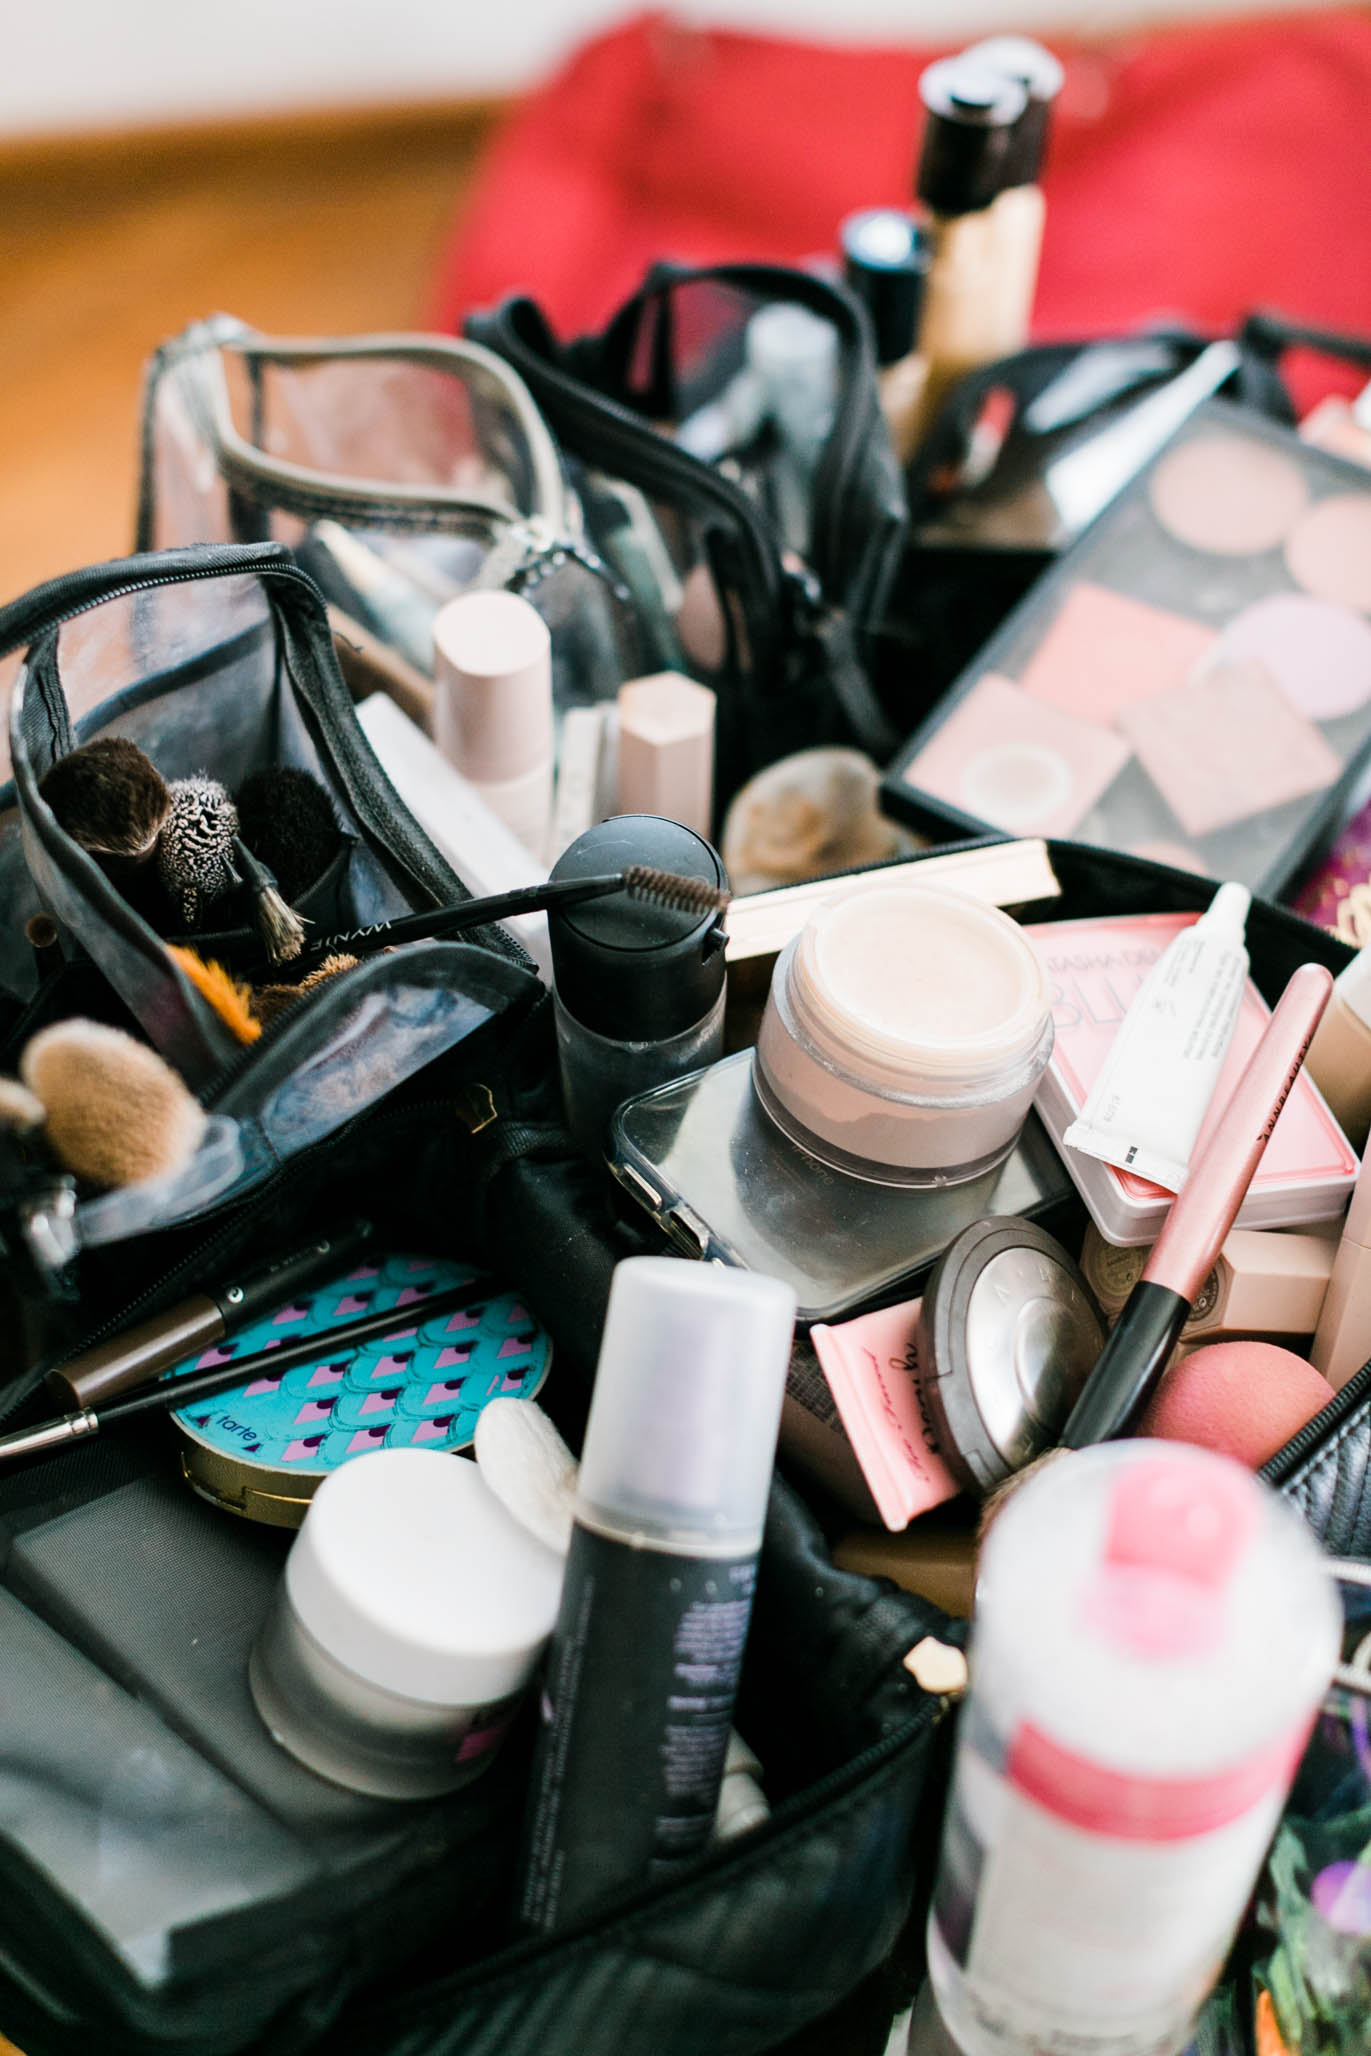 I oddly love photographing make-up bags. It usually gives you an idea of how the day starts.